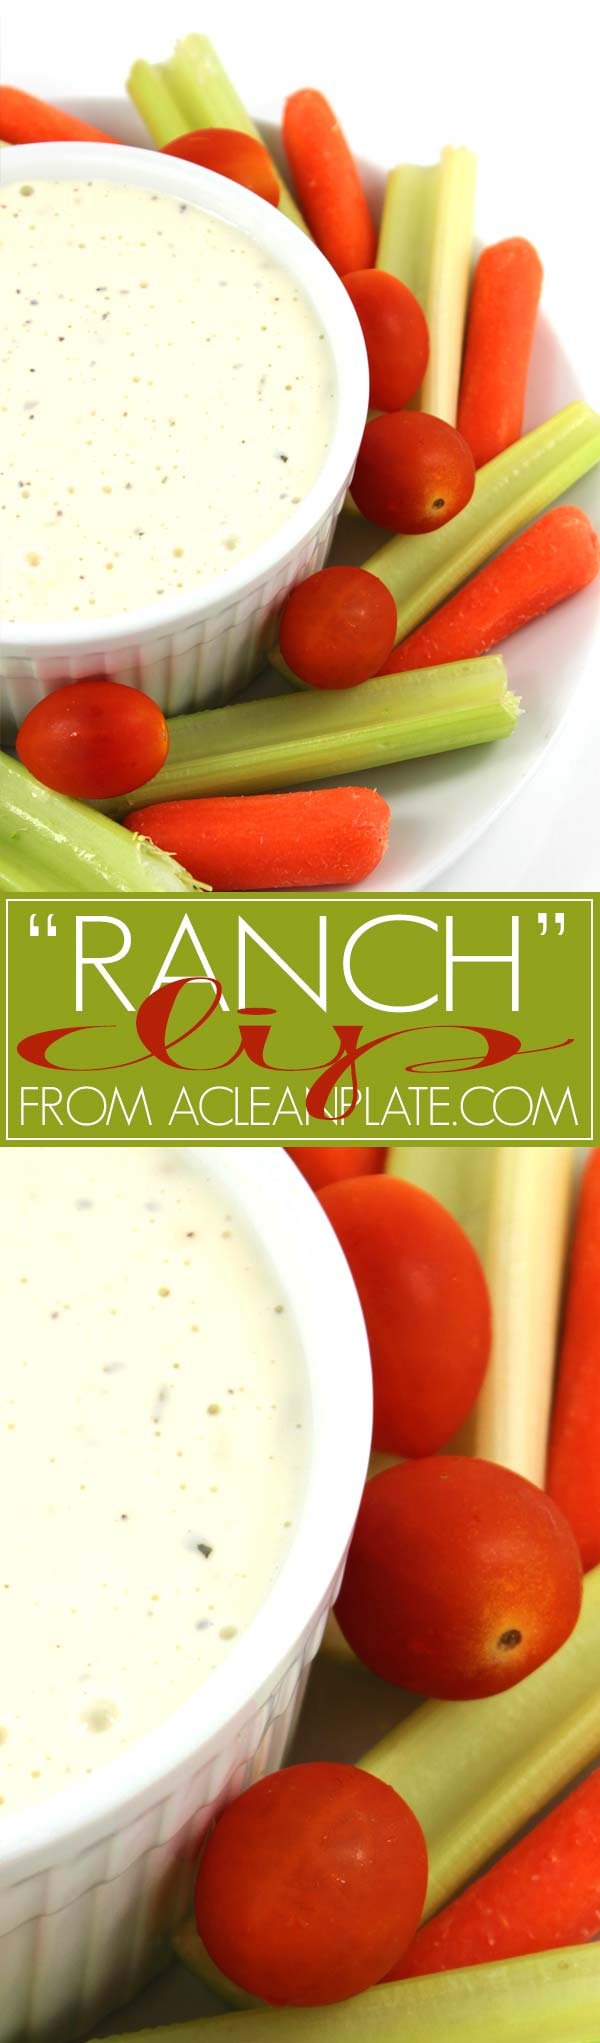 Easy, dairy-free Ranch Dip recipe from acleanplate.com